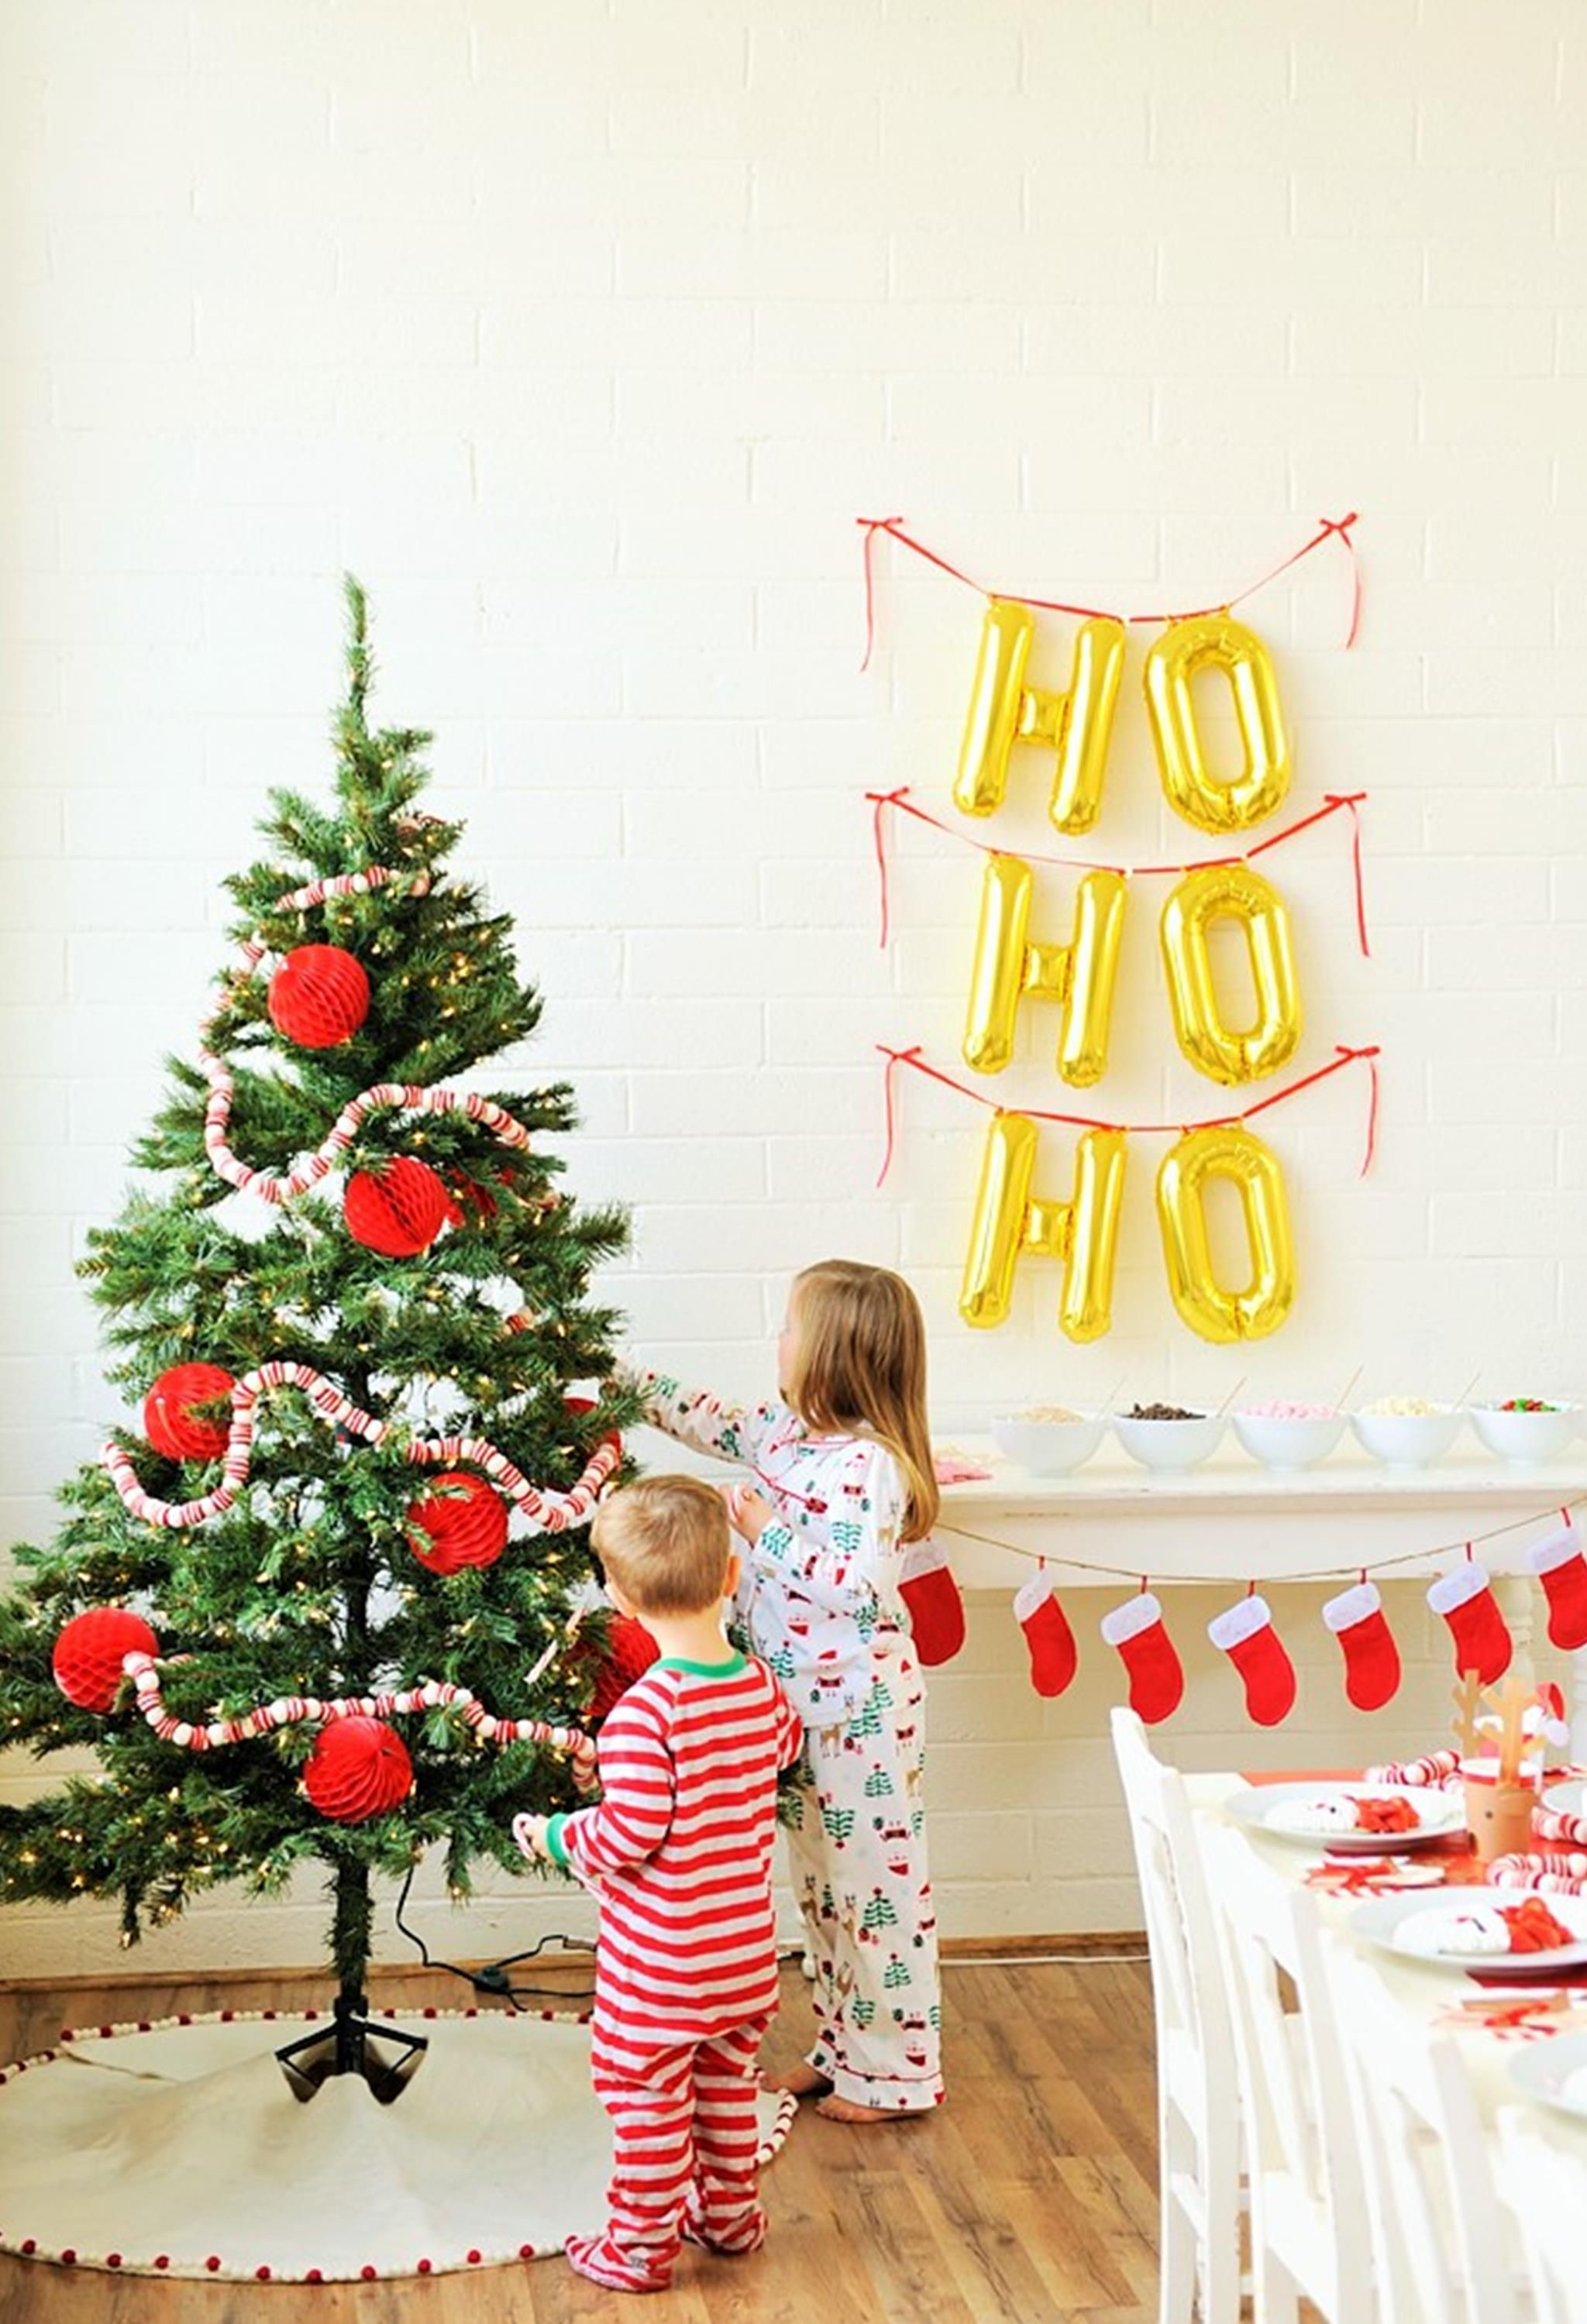 How To Host A Santa Breakfast Project Nursery Christmas Party Activities Santa Breakfast Christmas Pajama Party